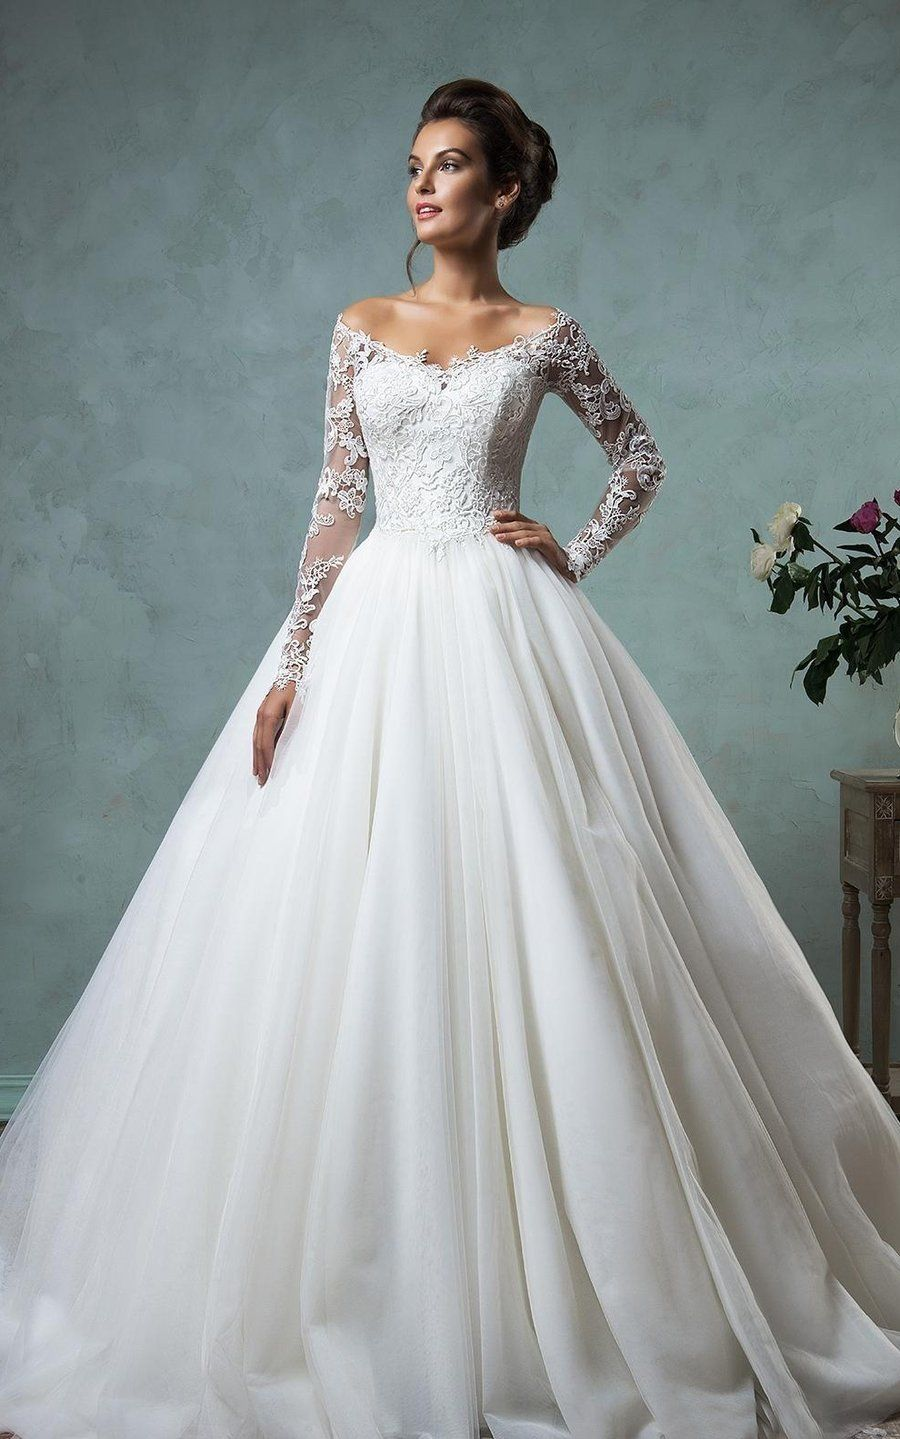 A Line Ball Gown Empire Mini Jewel V Neck Long Sleeve Bell Empire Dropped Appliques Court Train Backless Tulle Lace Dress Lace Wedding Dress Vintage Wedding Dresses Wedding Dresses Lace Ballgown [ 1439 x 900 Pixel ]